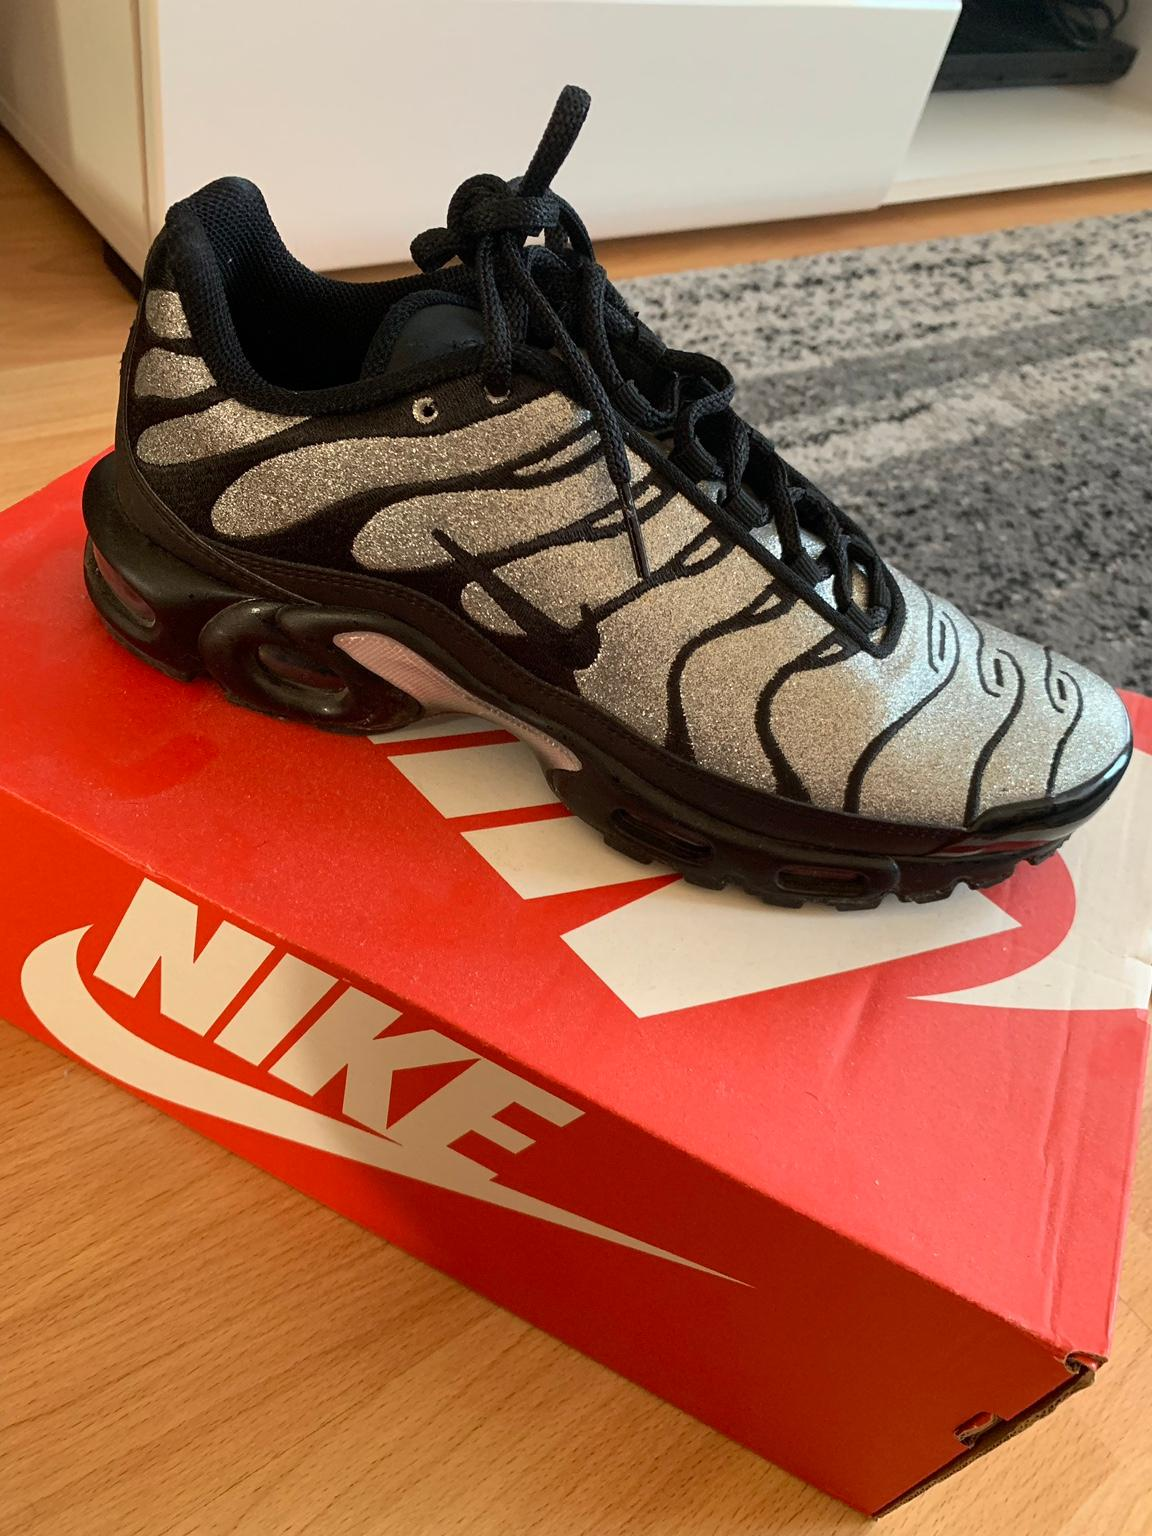 angebote Turnschuhe haifisch nikes